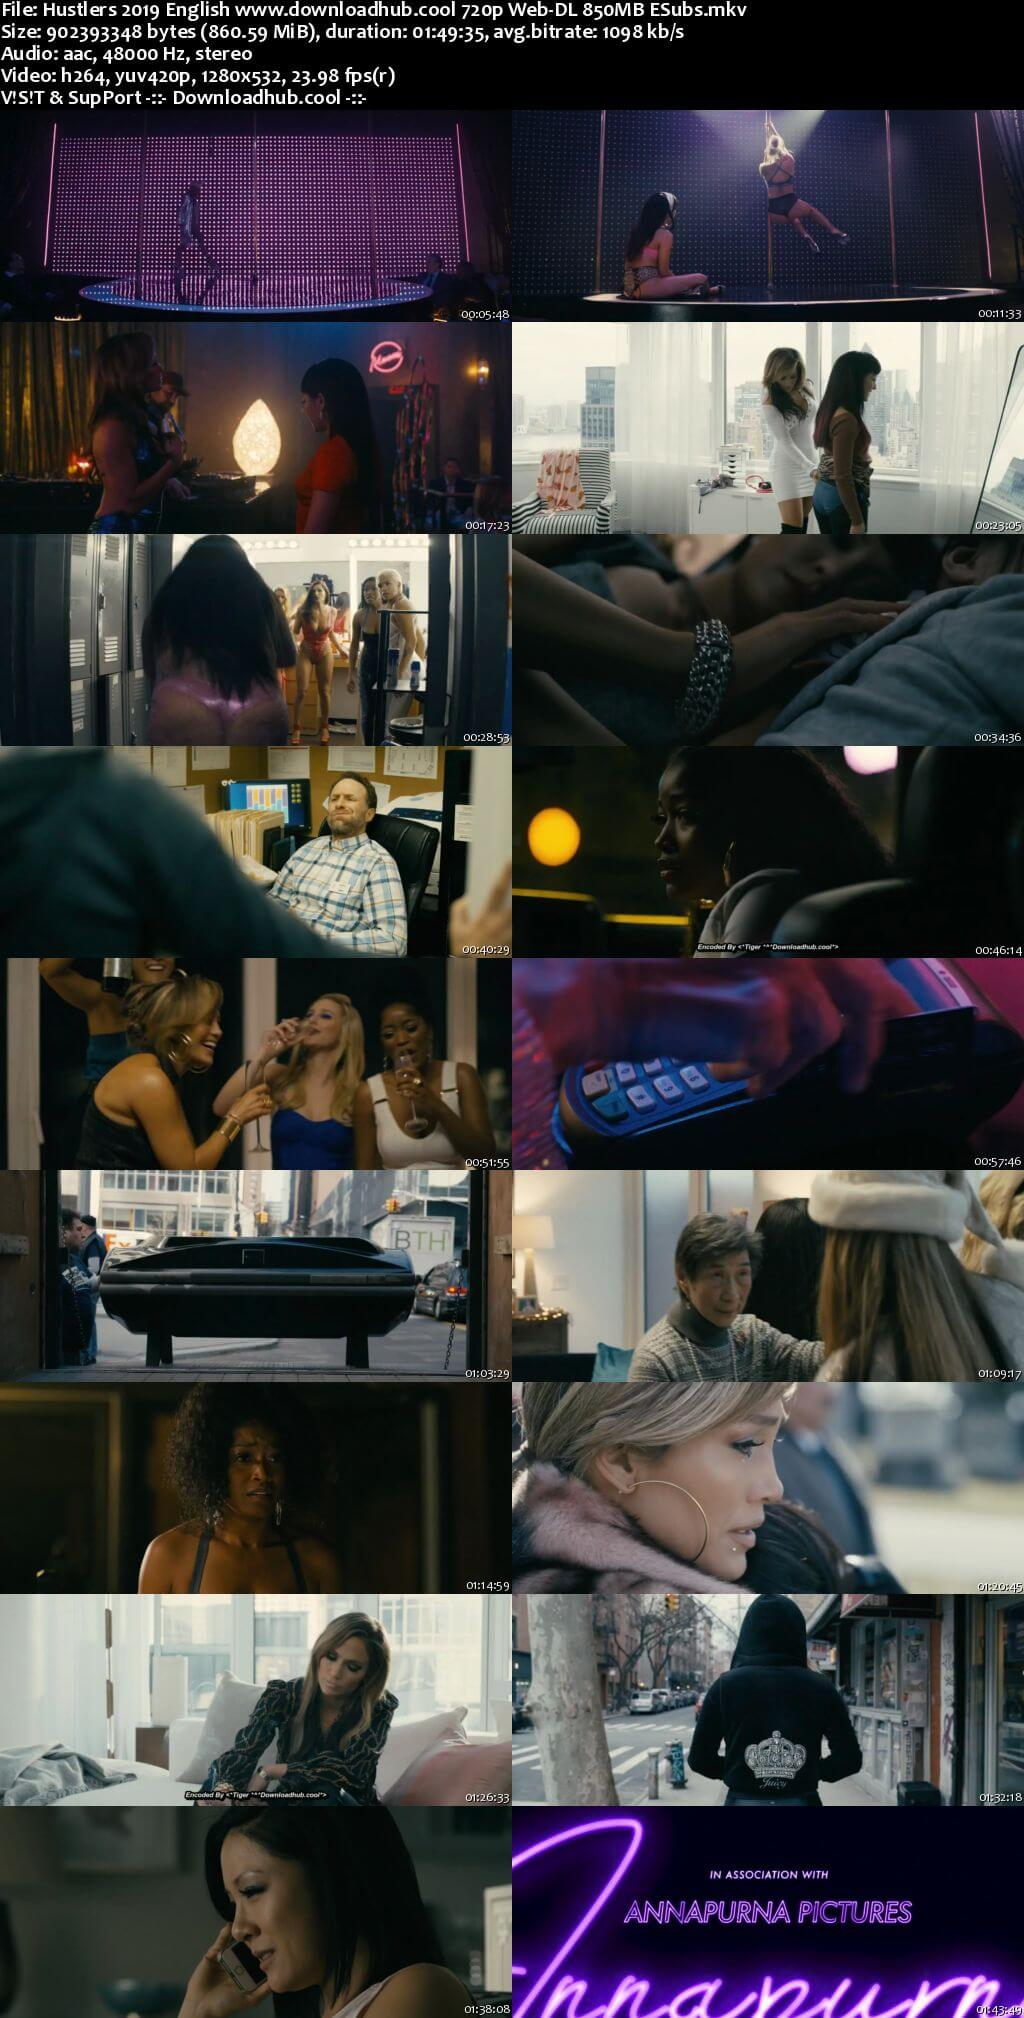 Hustlers 2019 English 720p Web-DL 850MB ESubs